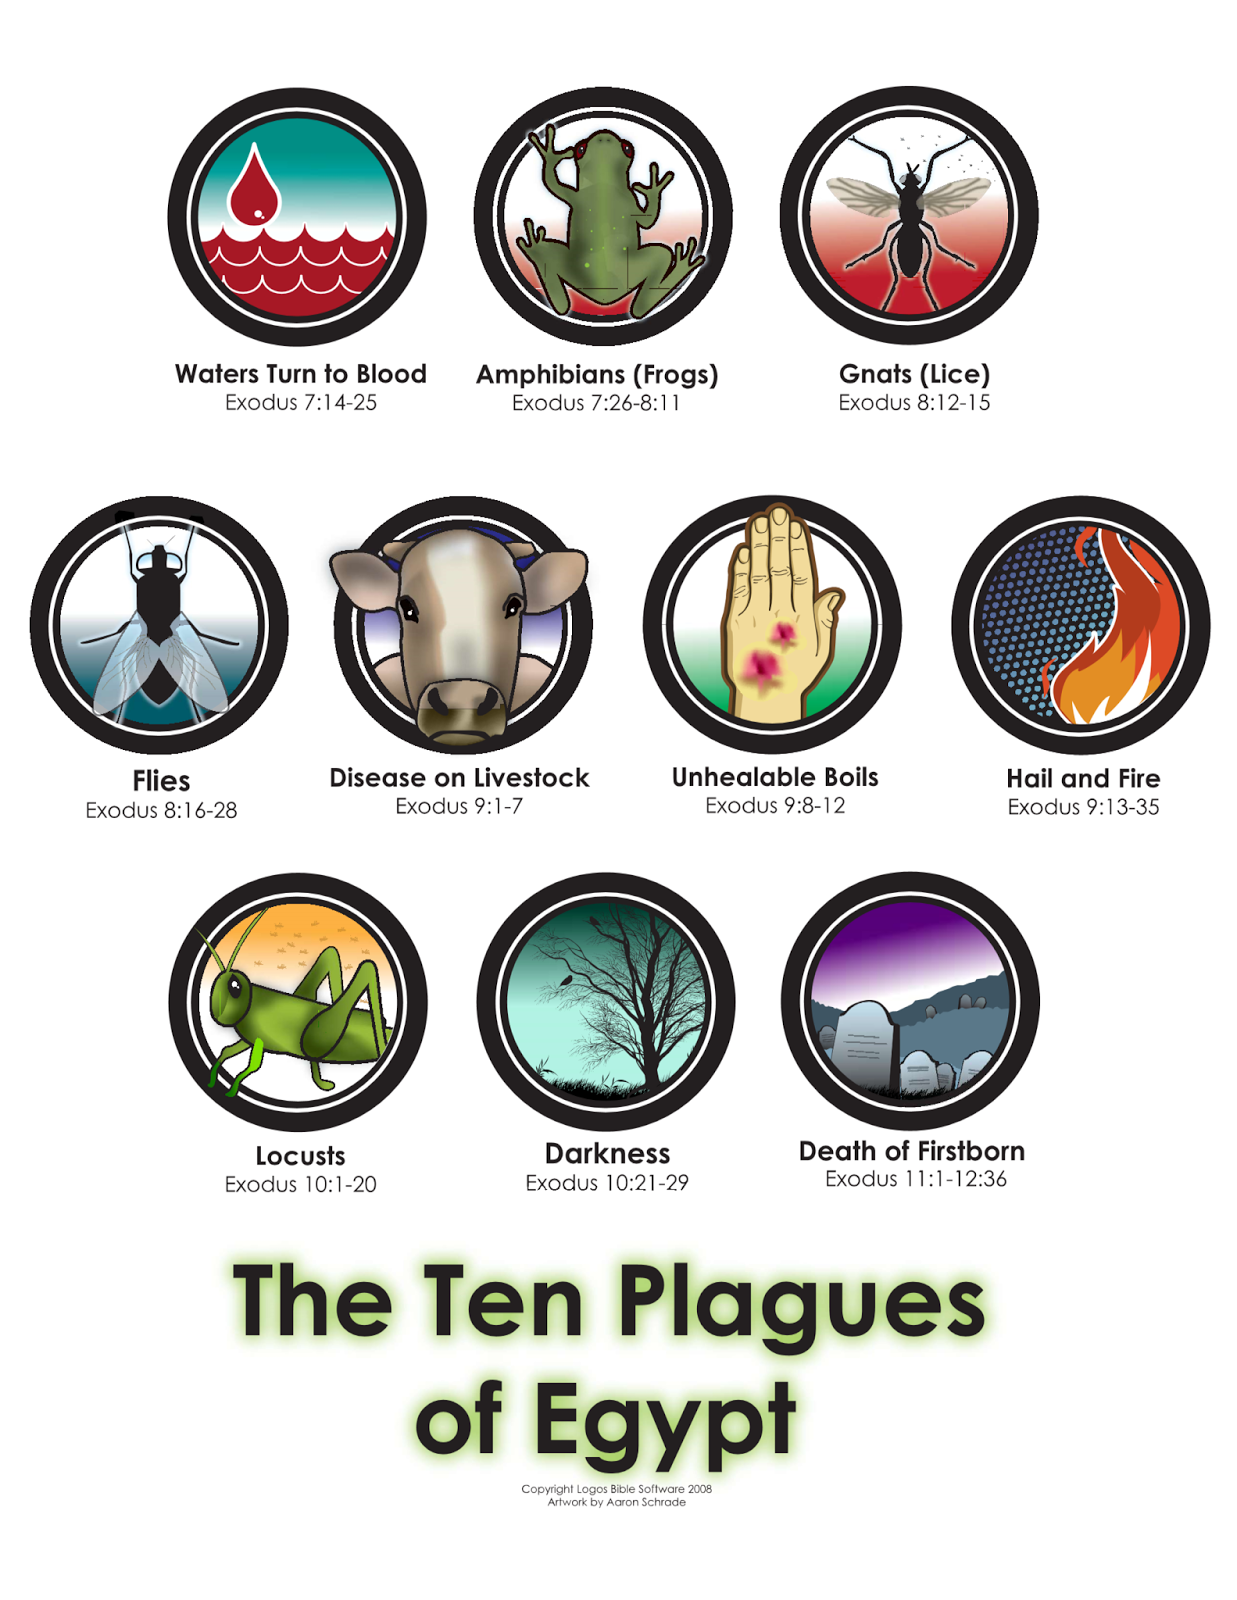 10 Plagues of Egypt - Bible Story